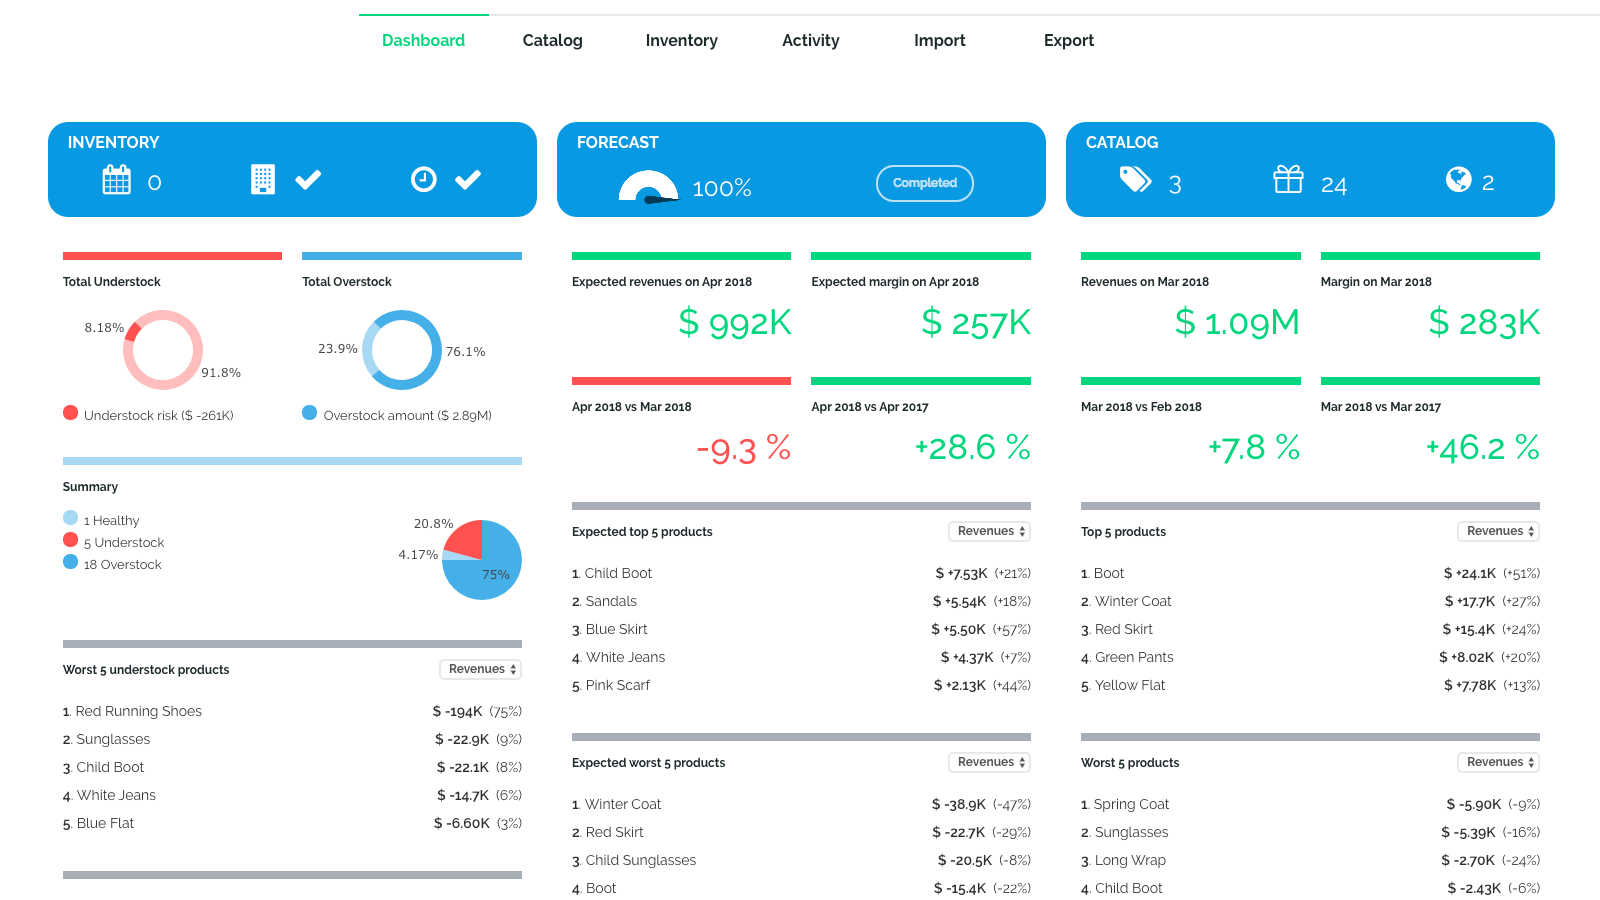 Smart Dashboard with Inventory and Forecast metrics